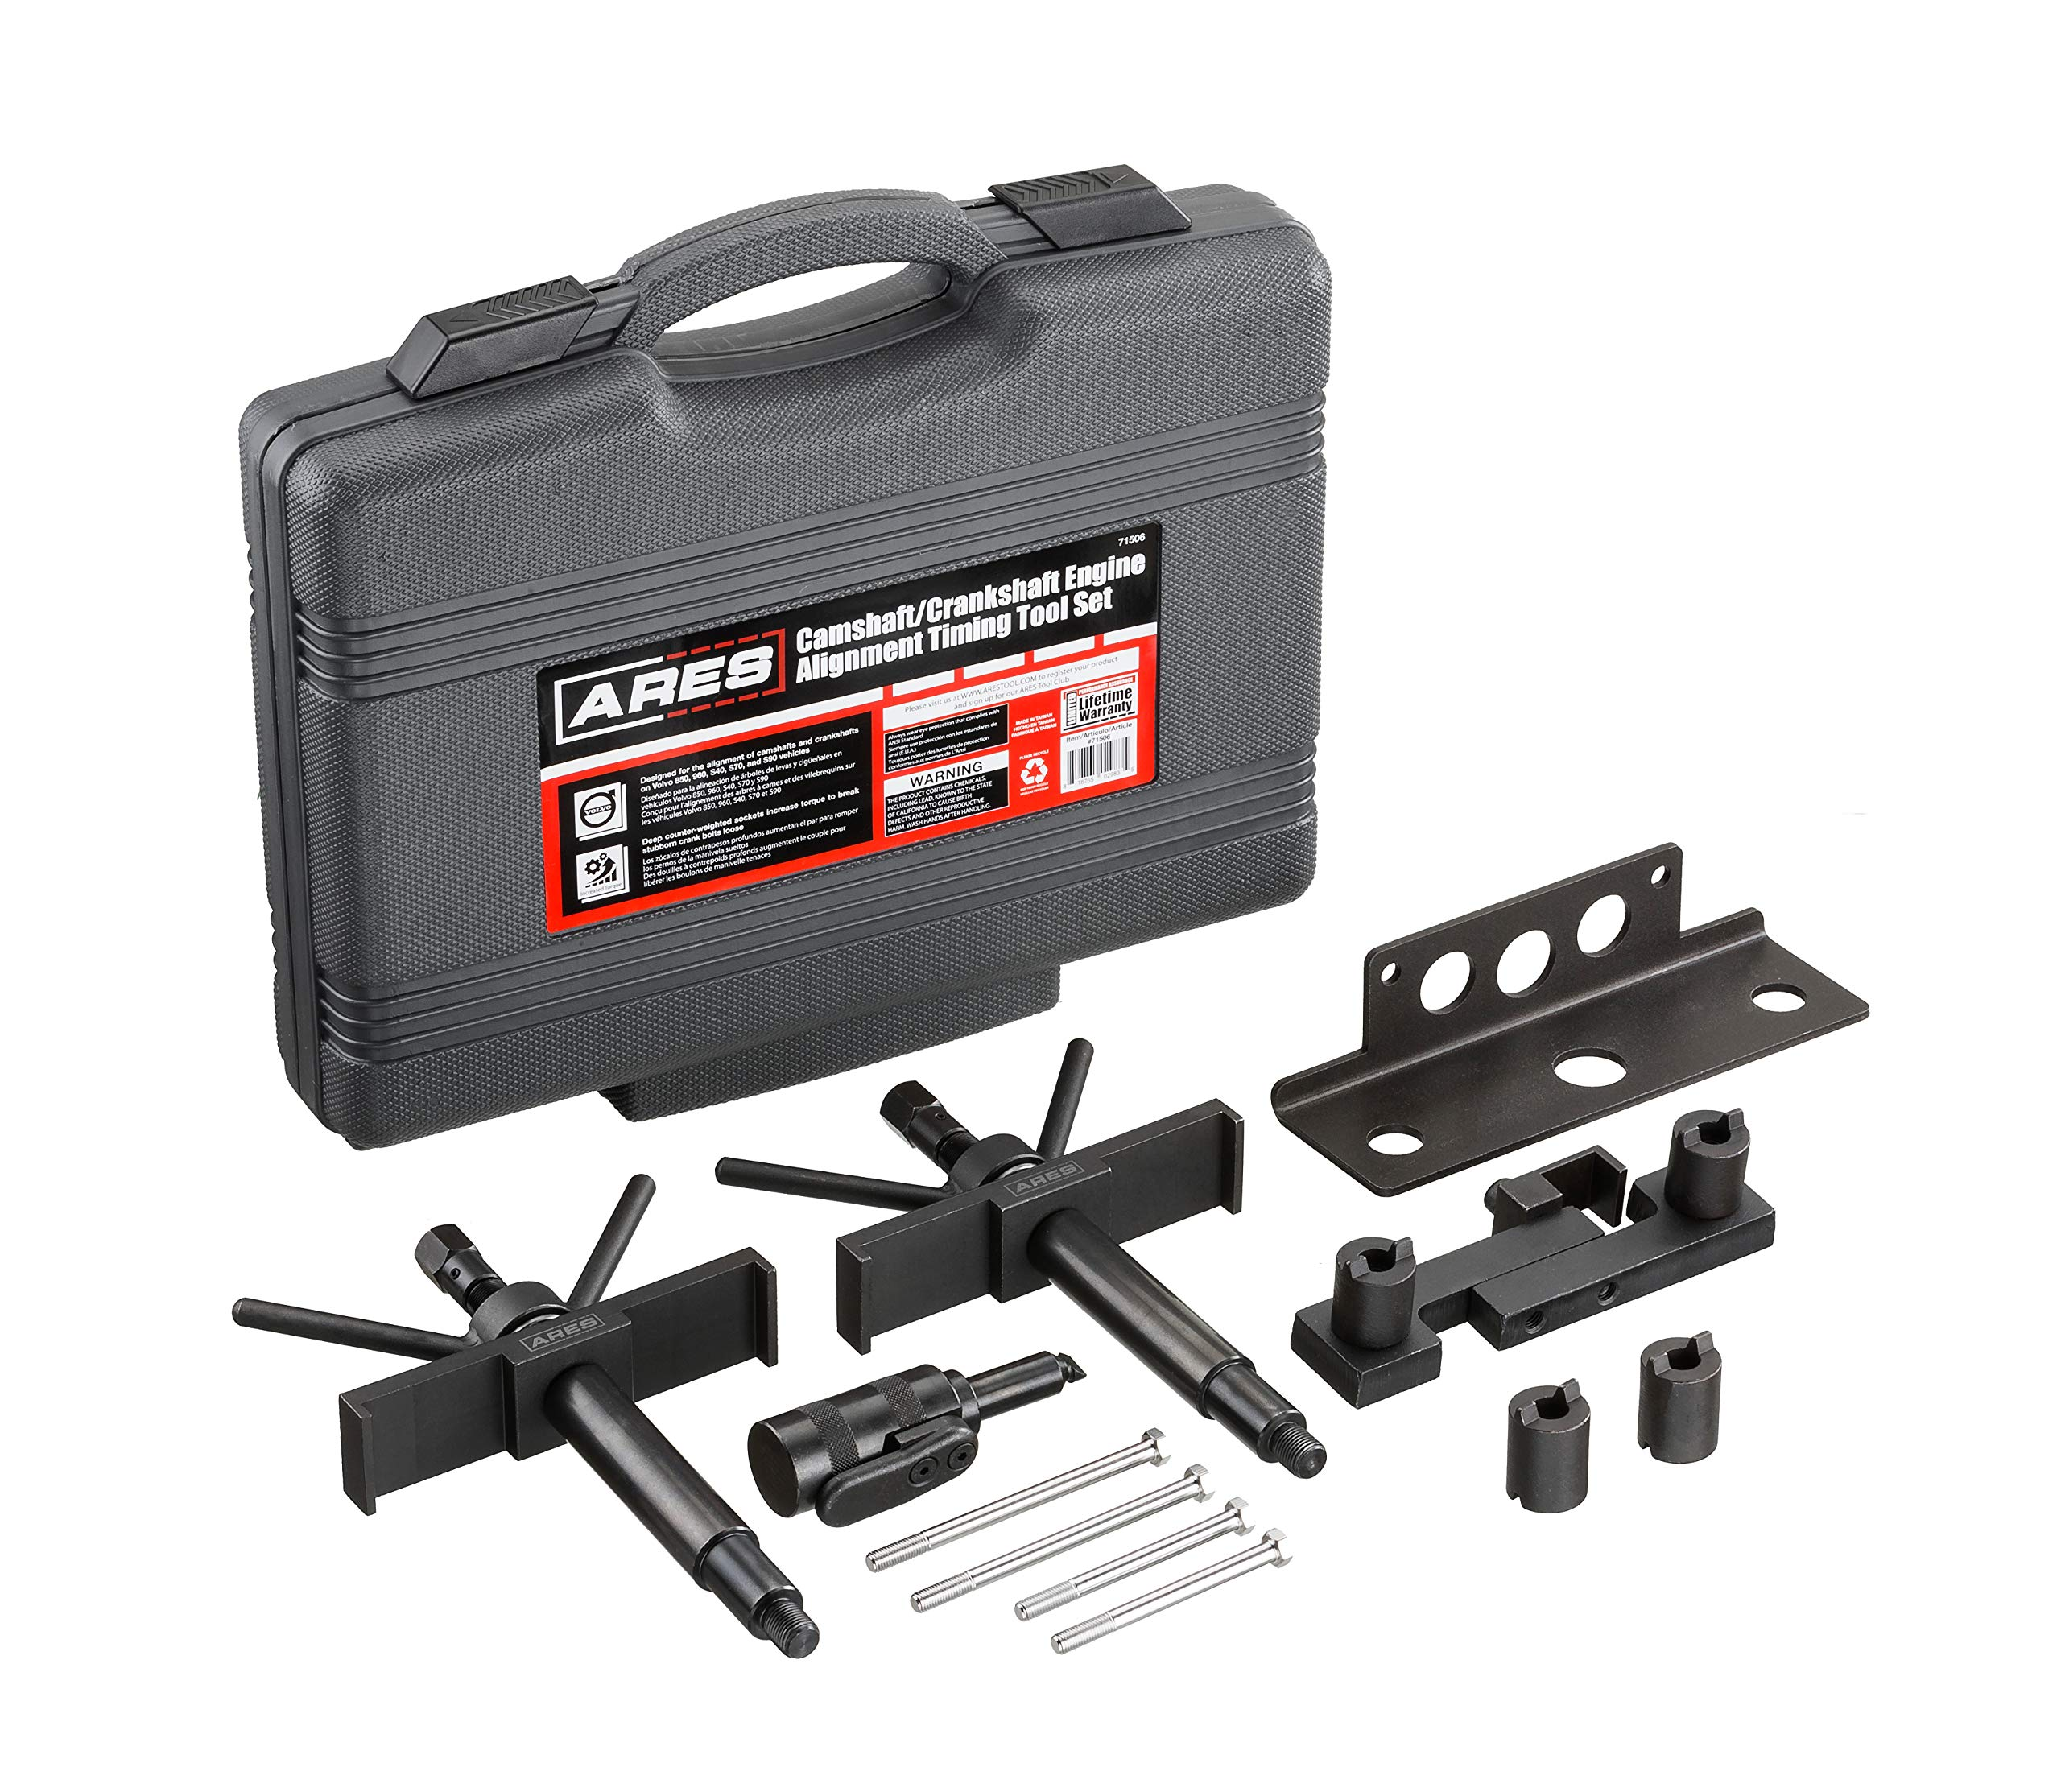 ARES 71506 | Volvo Camshaft, Crankshaft, and Timing Alignment Master Tool Set | Deep Counter-Weighted Sockets for Increased Torque | Correctly Install Camshafts with Cam Cover